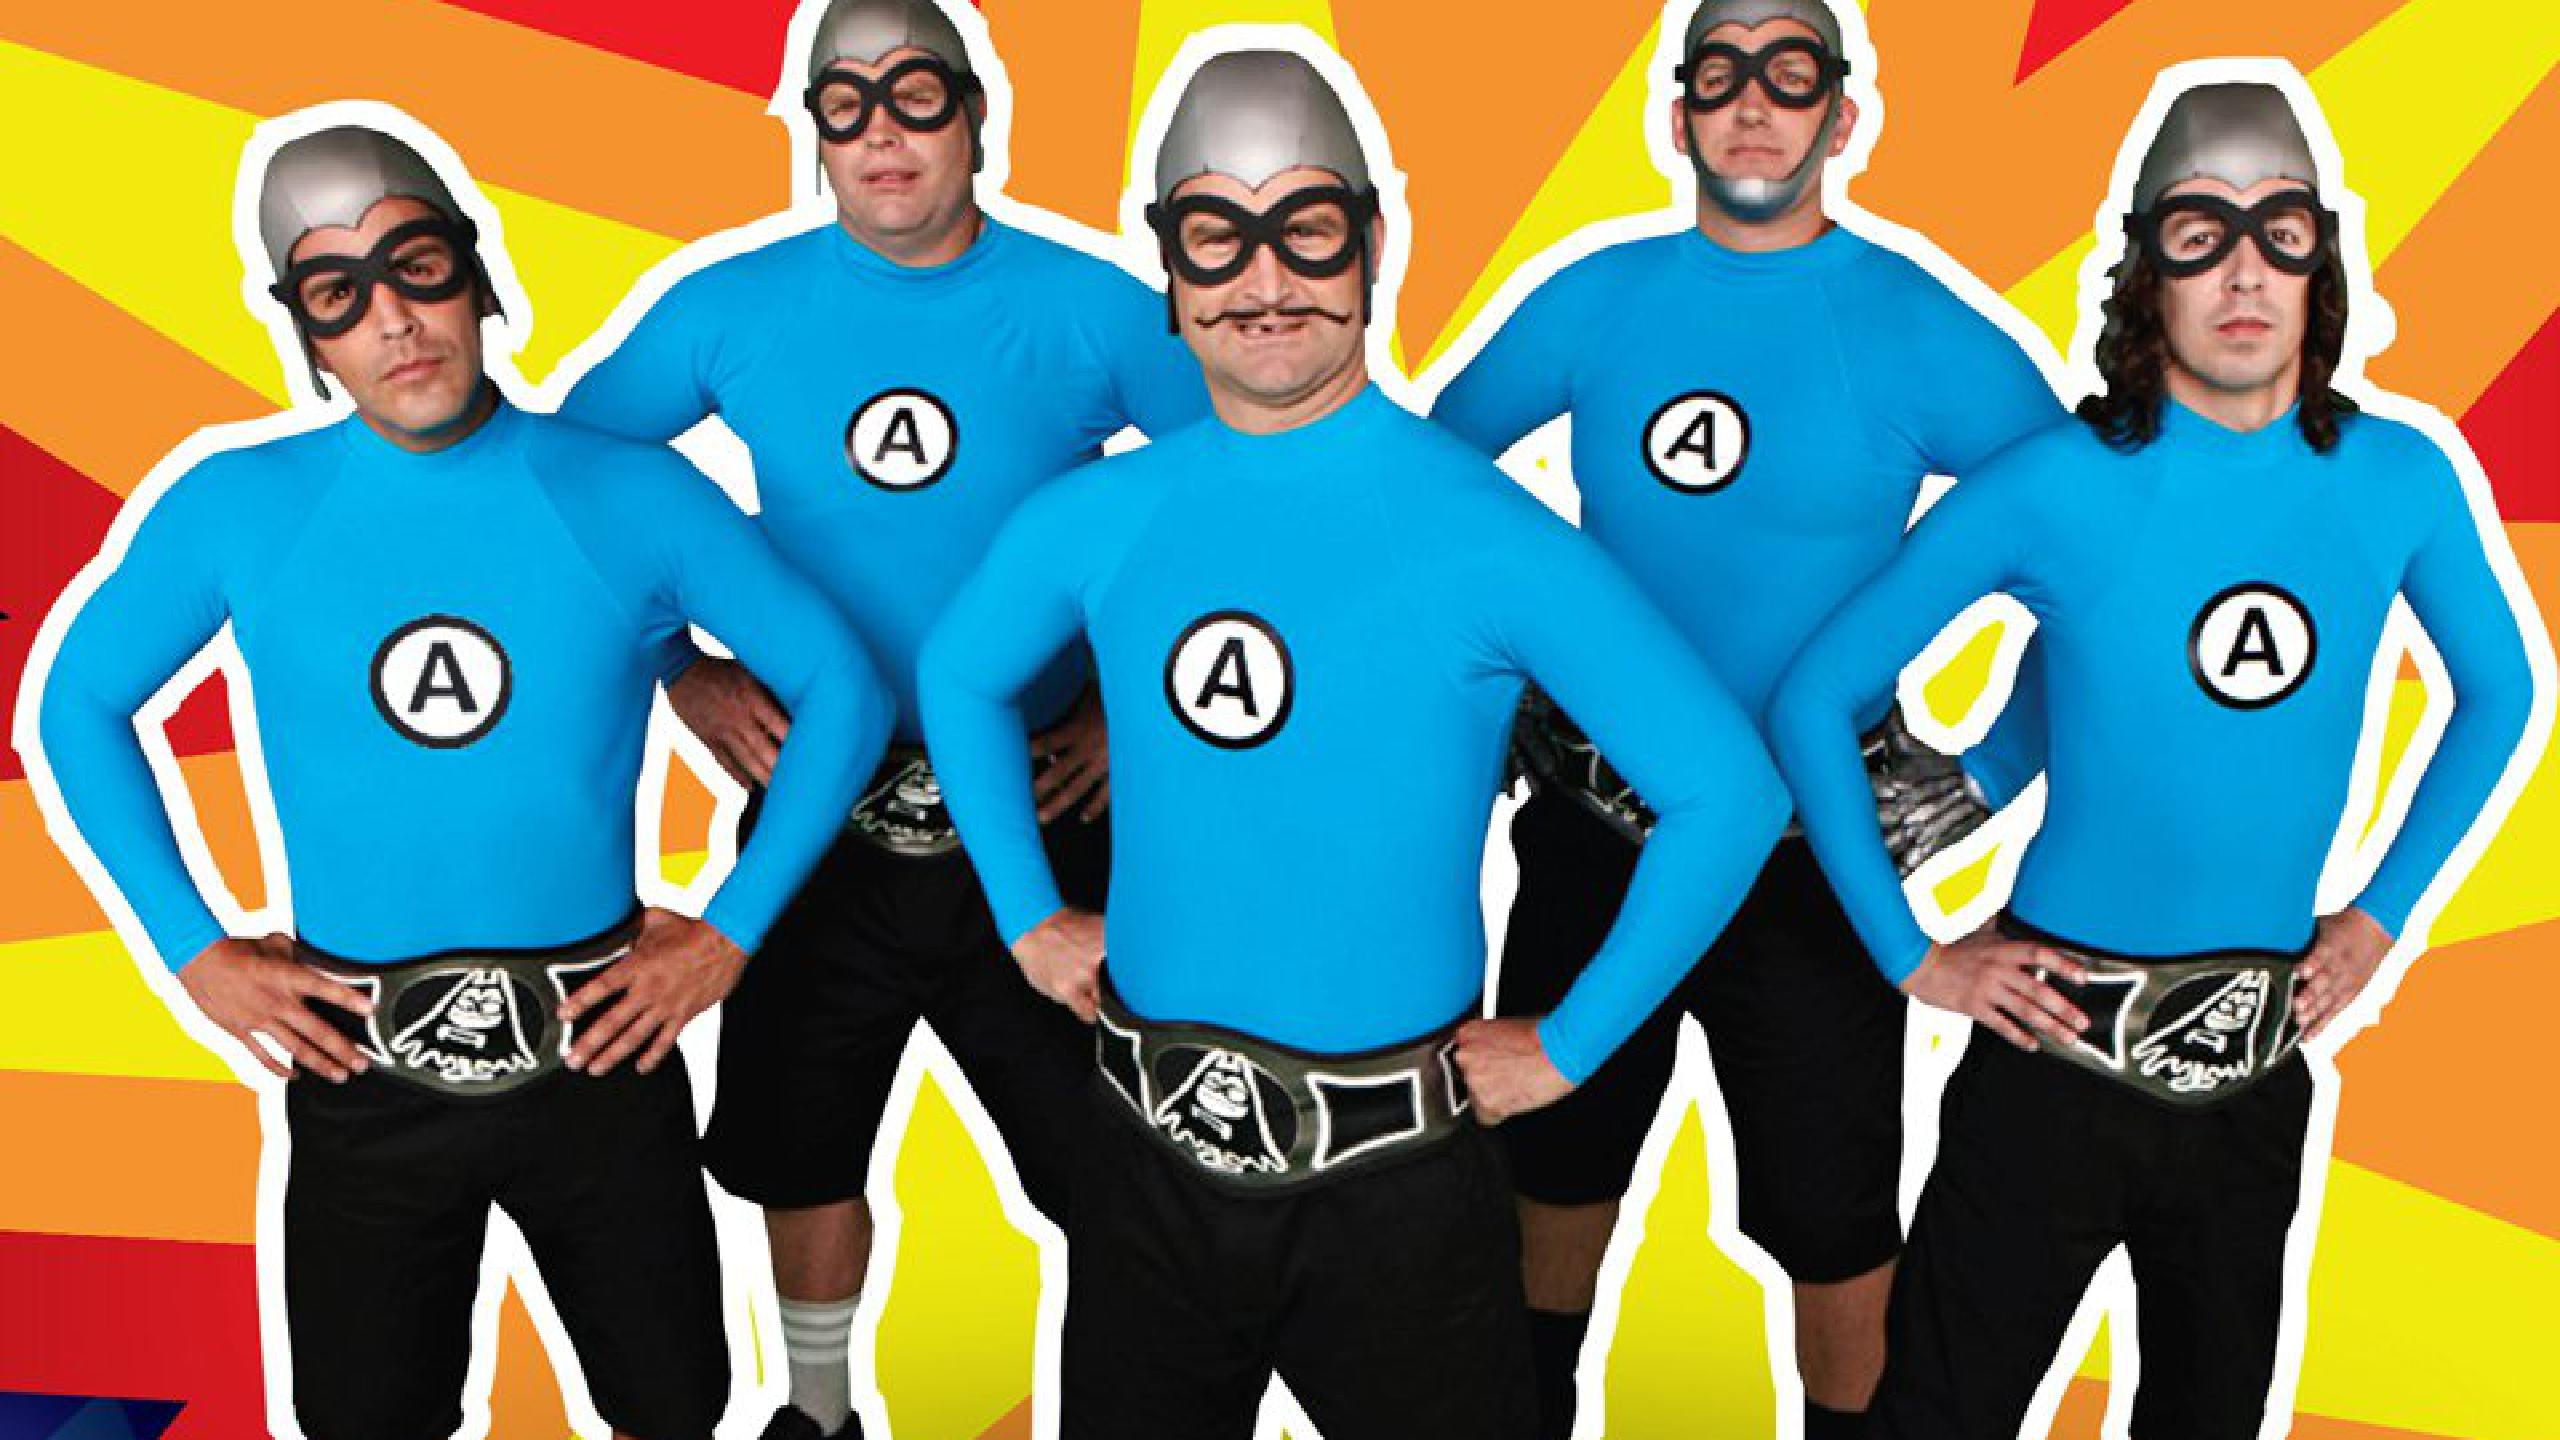 Aquabats Tour 2020 The Aquabats tour dates 2019 2020. The Aquabats tickets and